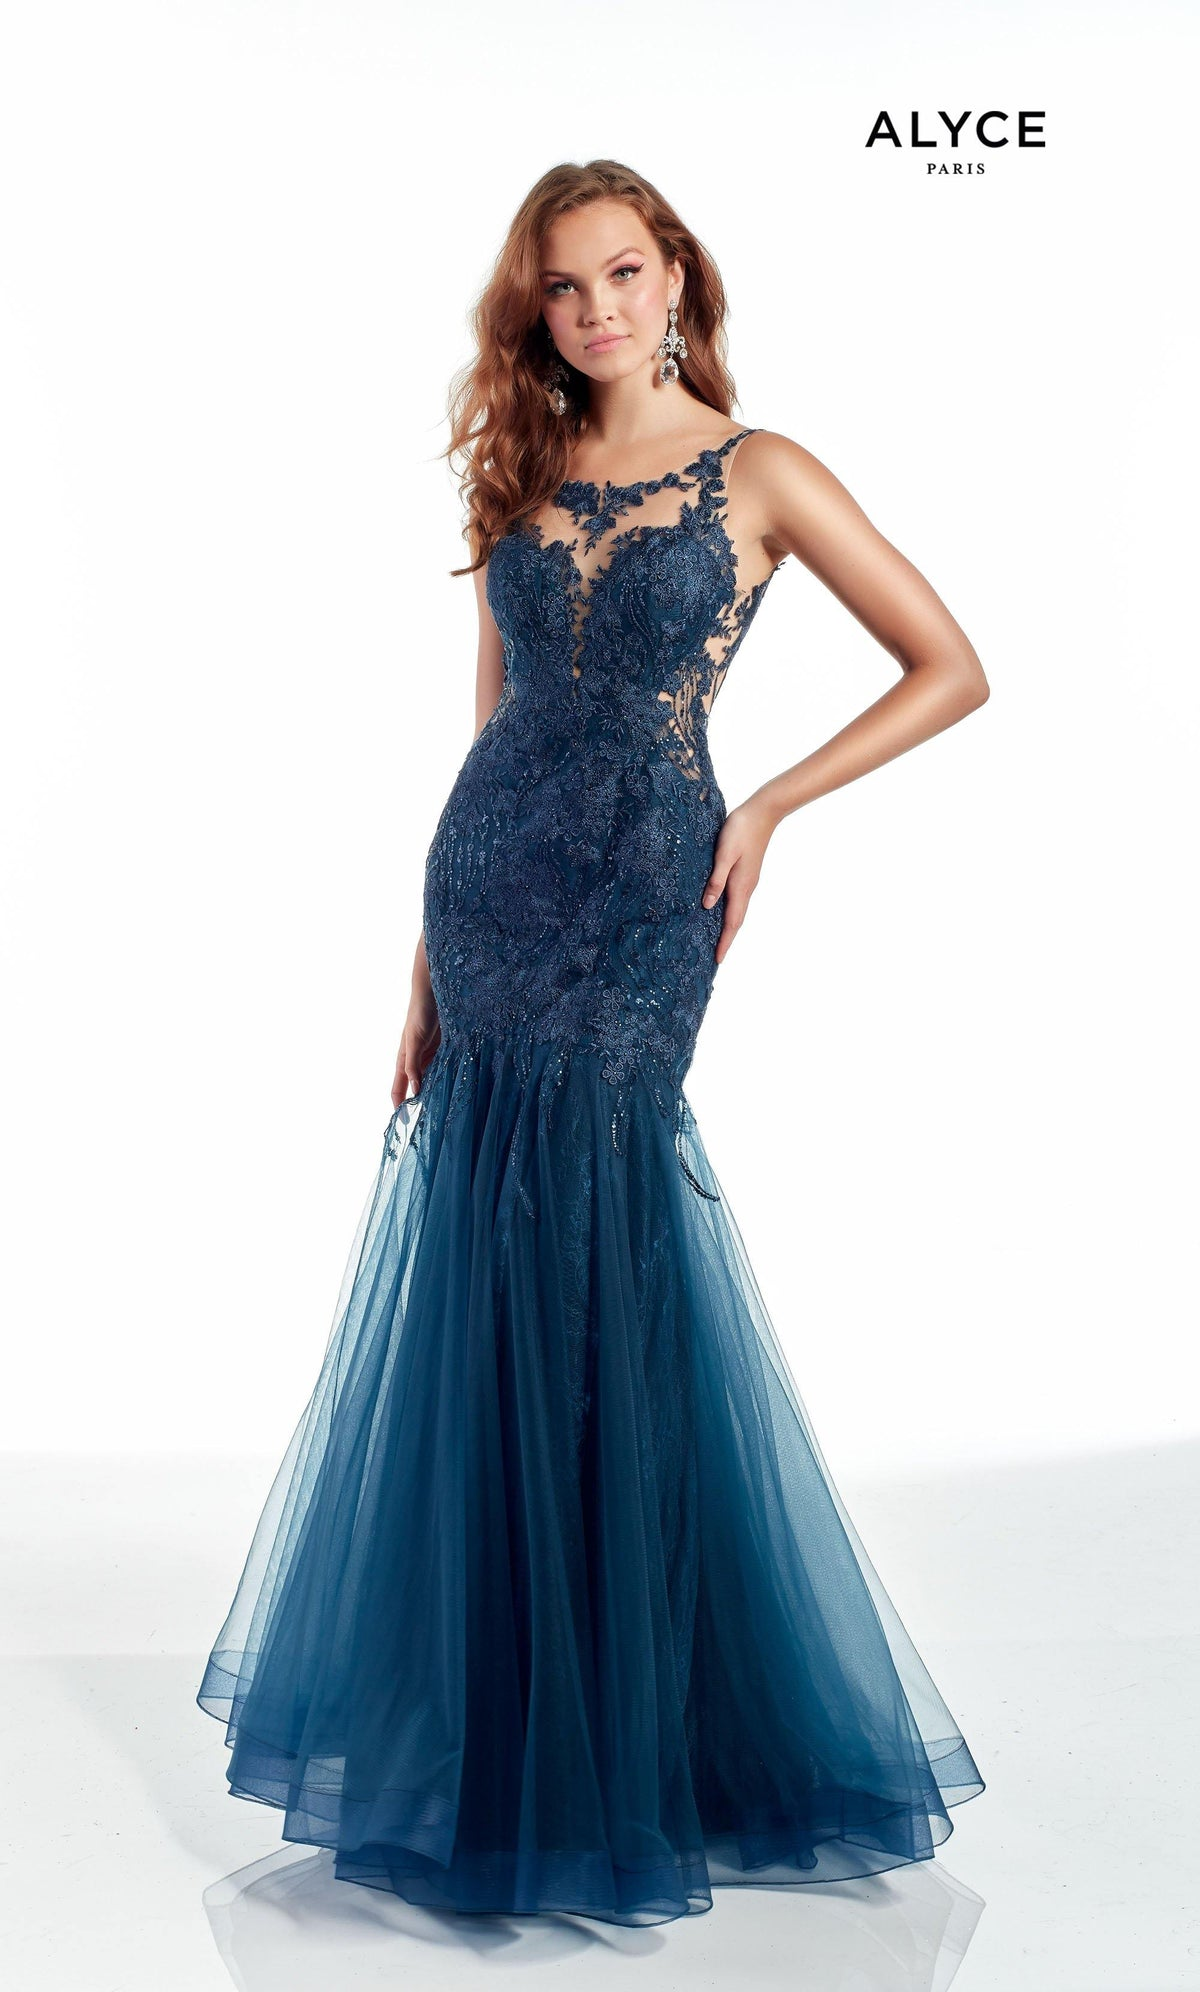 Dark Blue tulle-lace mermaid formal dress with an illusion neckline